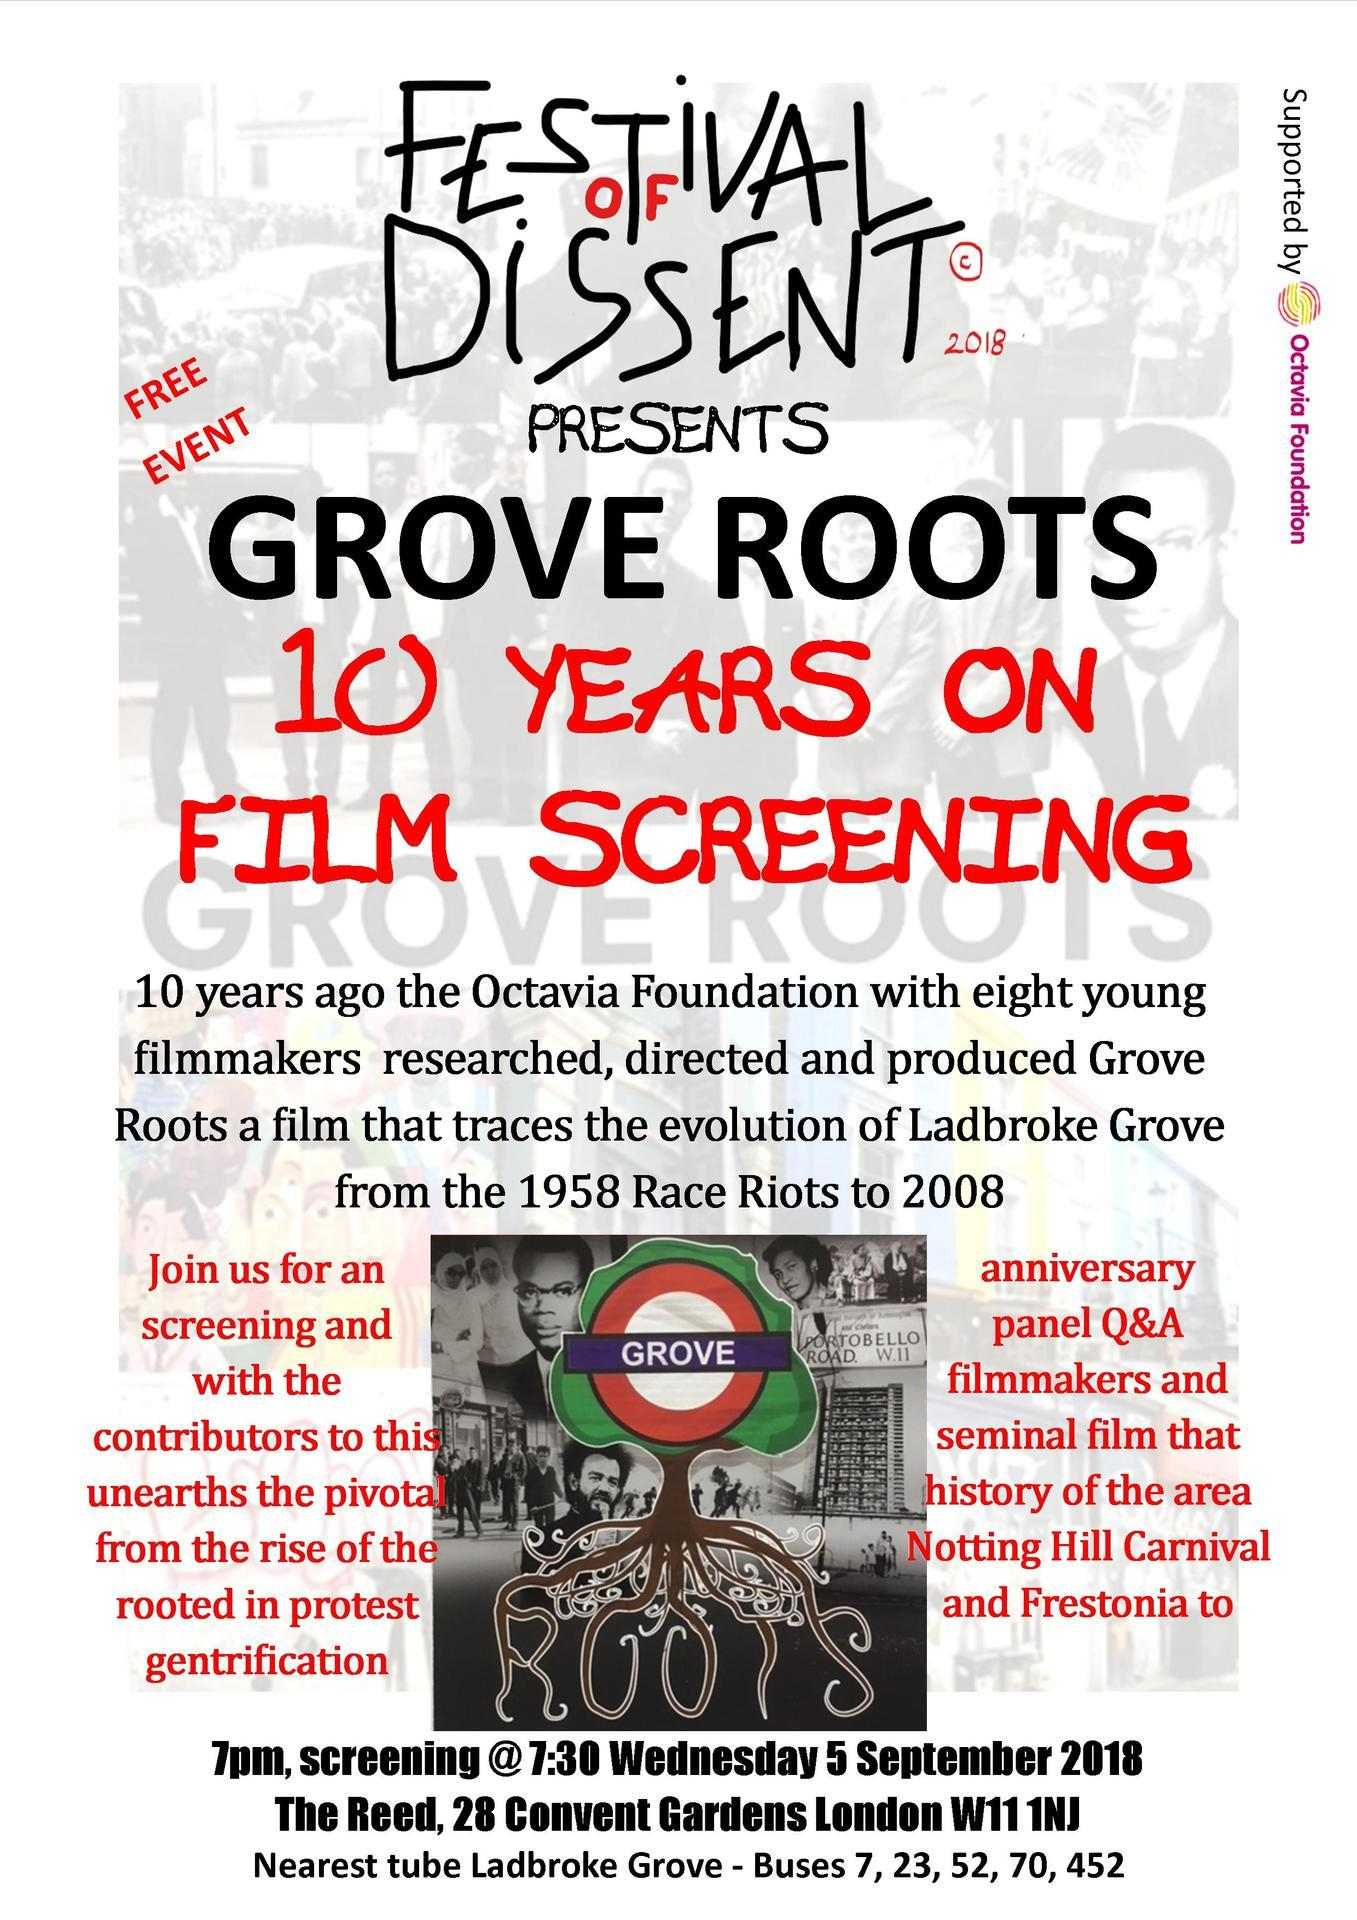 GROVE ROOTS 10 YEARS ON Screening   5 September 2018  IA